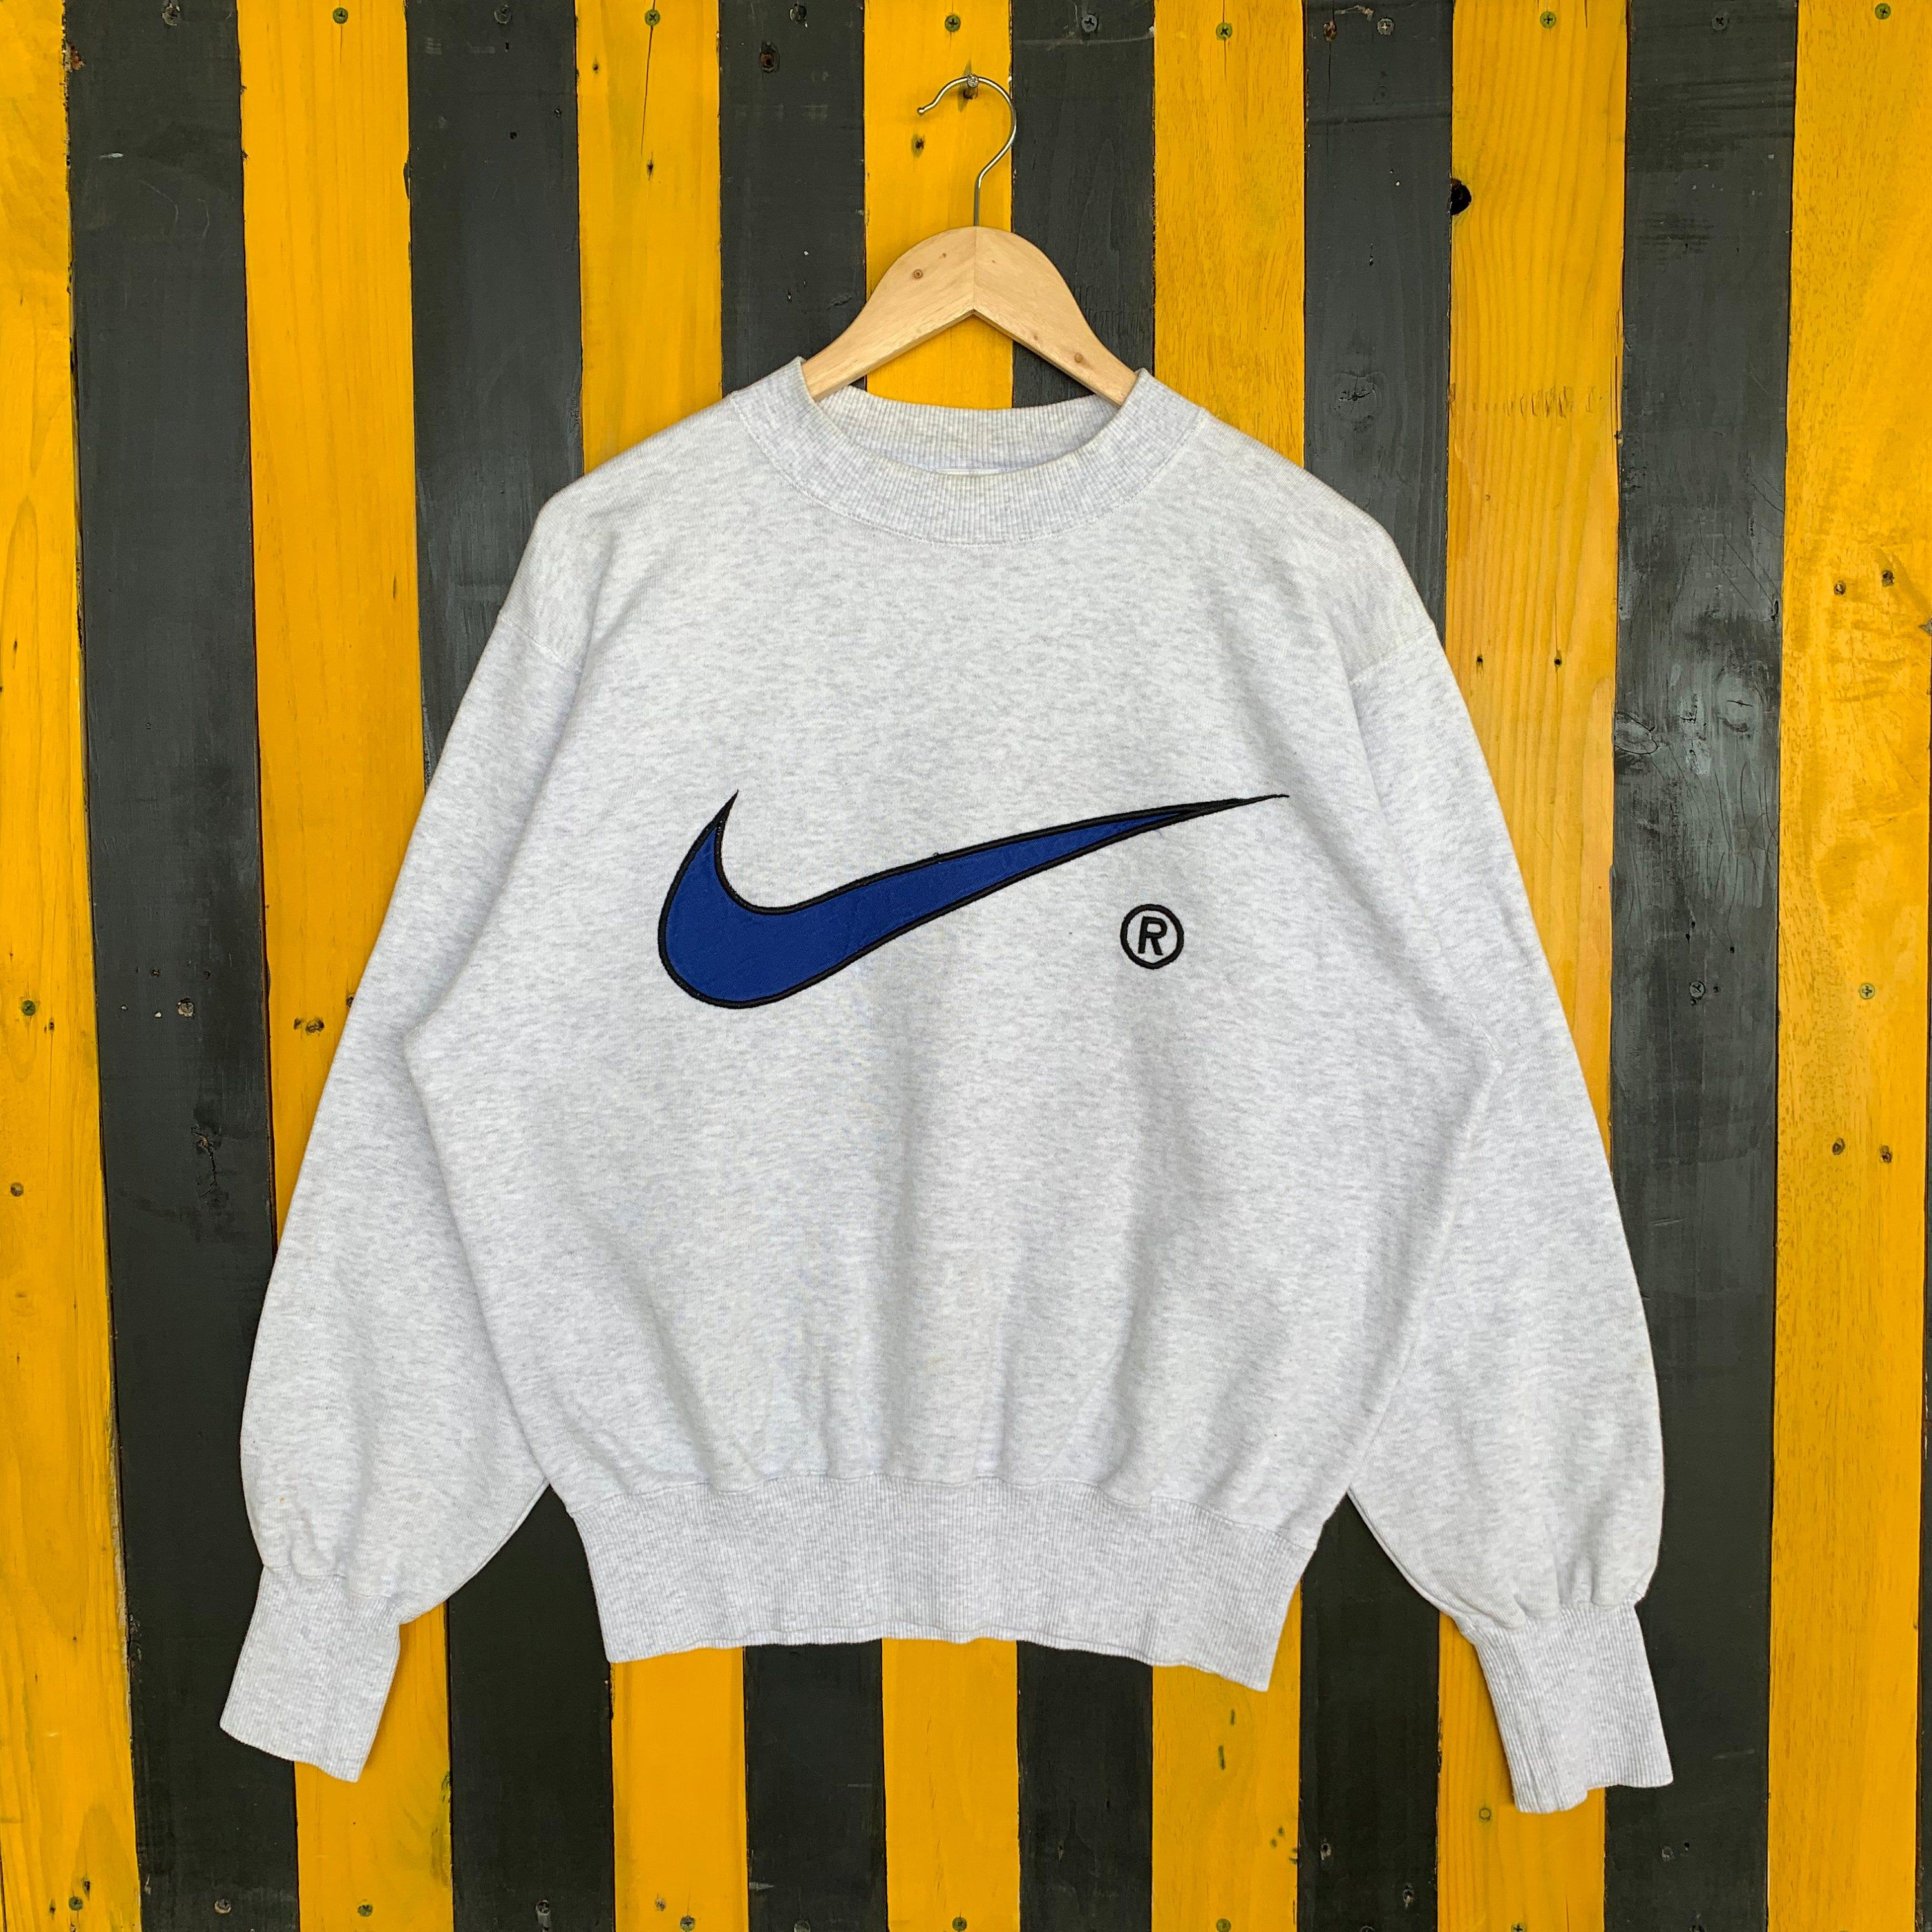 Excited To Share The Latest Addition To My Etsy Shop Vintage 90s Nike Big Swoosh Embroidery Sweatsh Vintage Hipster Outfits Sweatshirts Embroidery Sweatshirt [ 3000 x 3000 Pixel ]